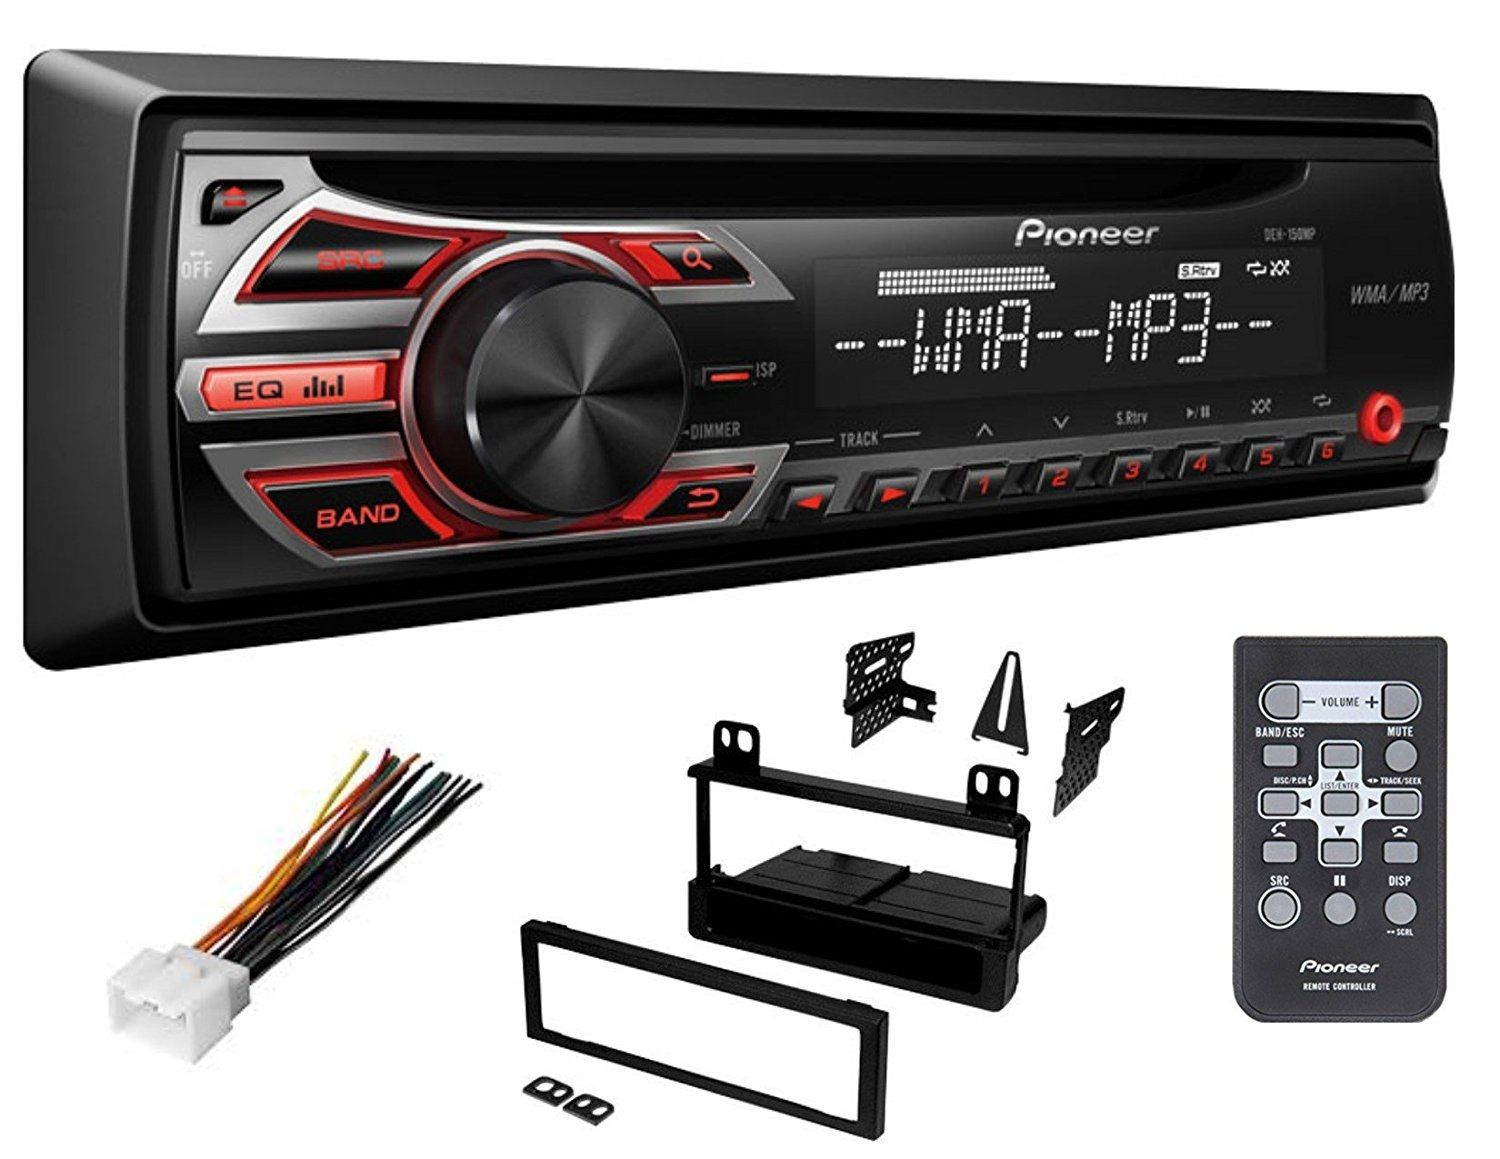 hight resolution of pioneer ford cd car stereo radio kit dash installation mounting with wiring harness walmart com